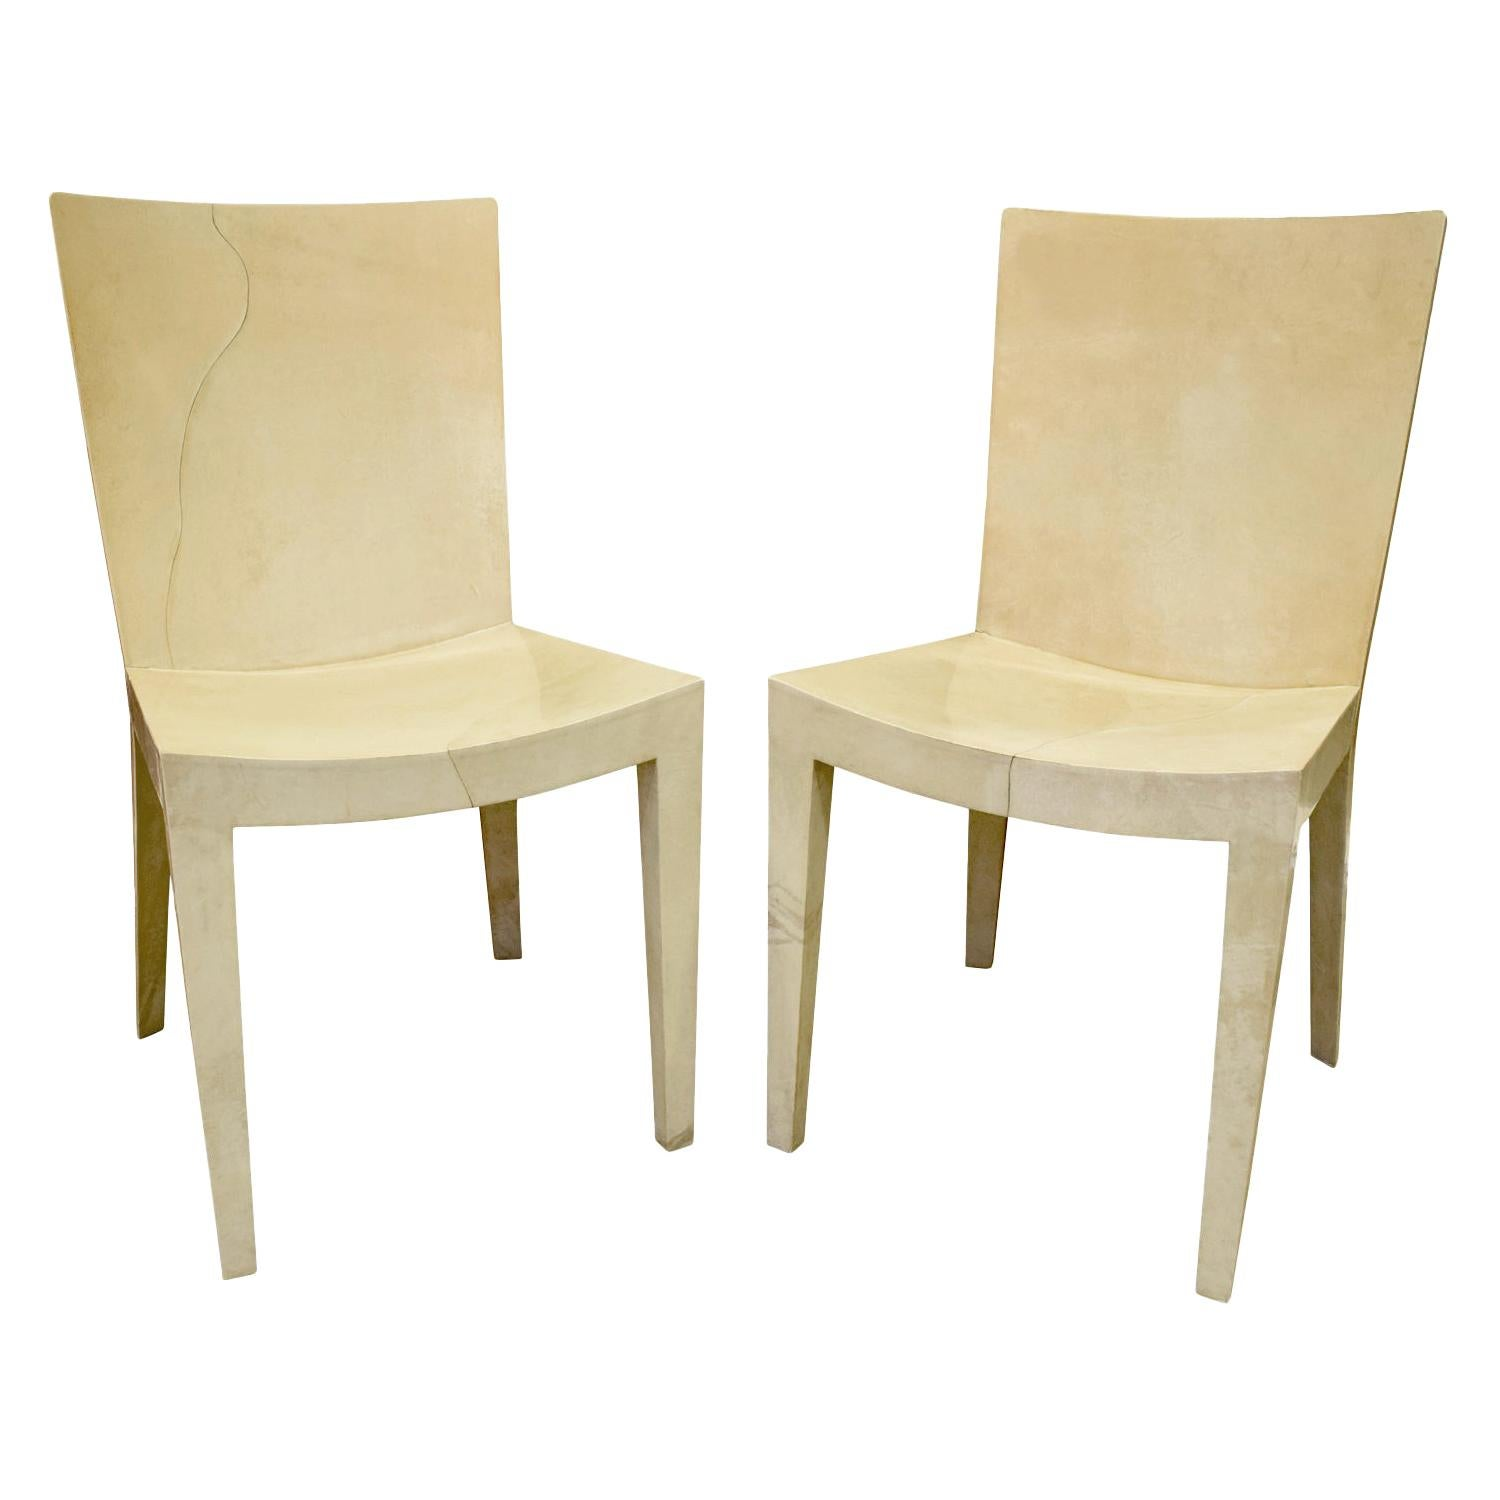 Karl Springer Pair of JMF Chairs in Lacquered Goatskin, 1970s